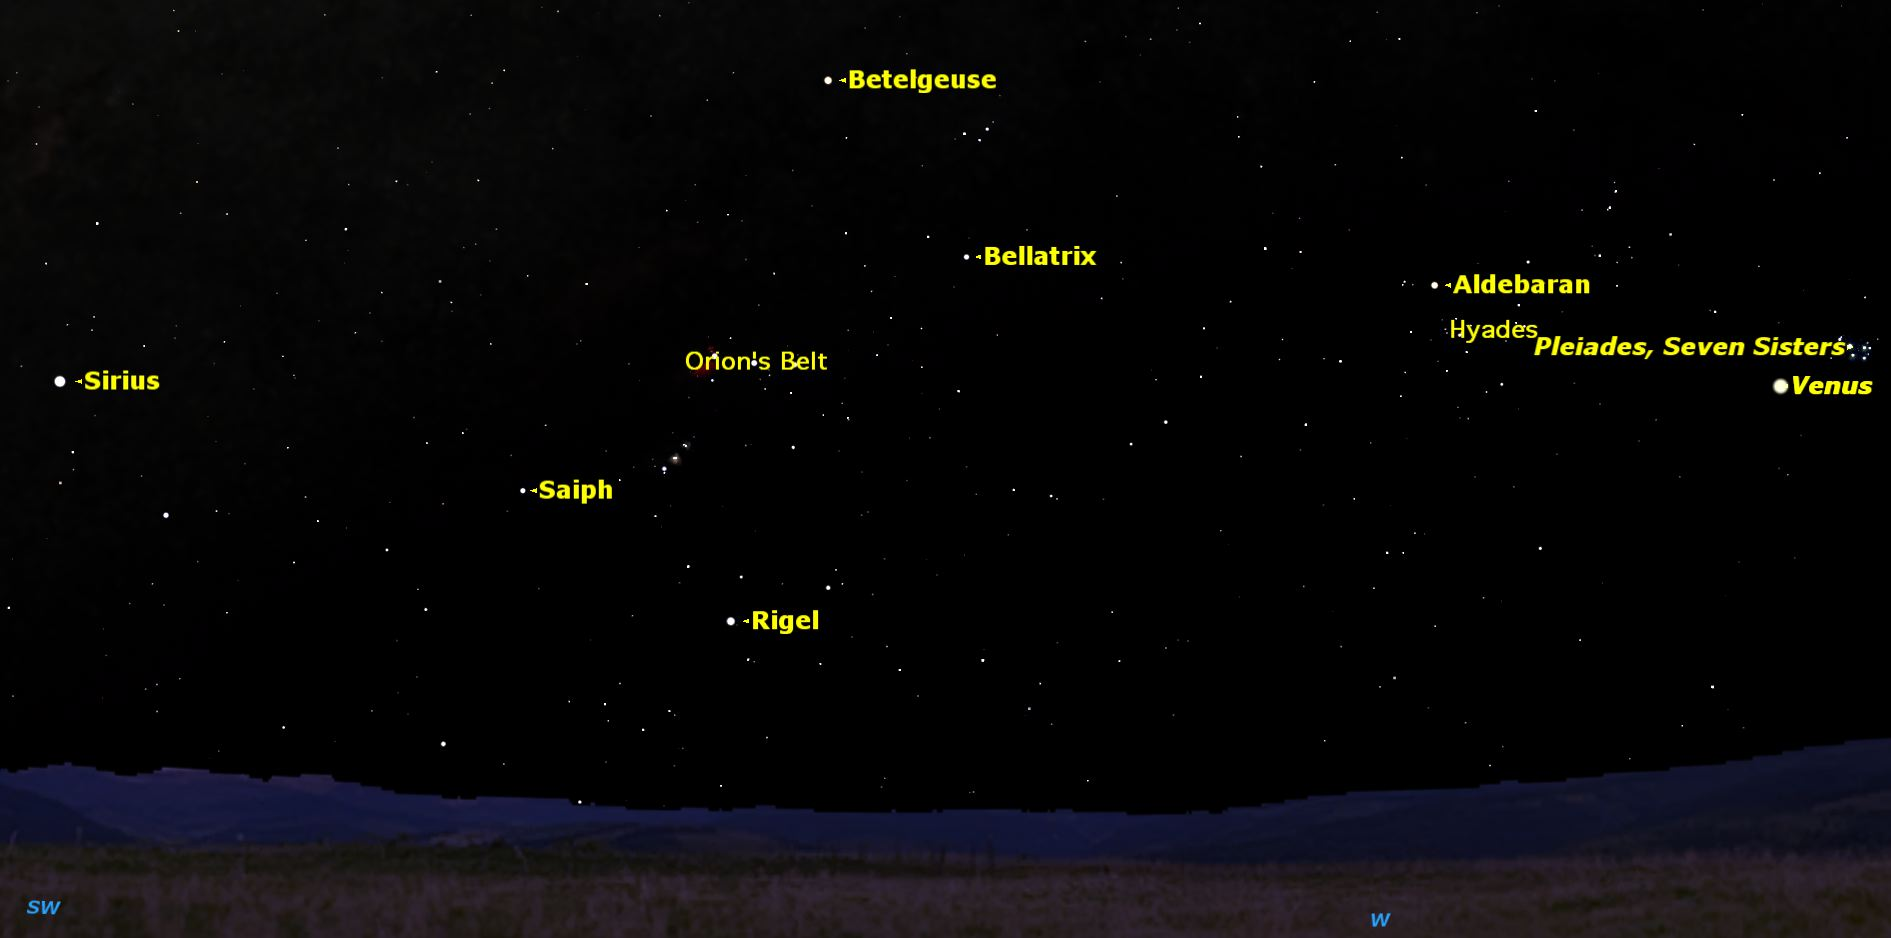 Sky Map for Winter Stars, April 2015